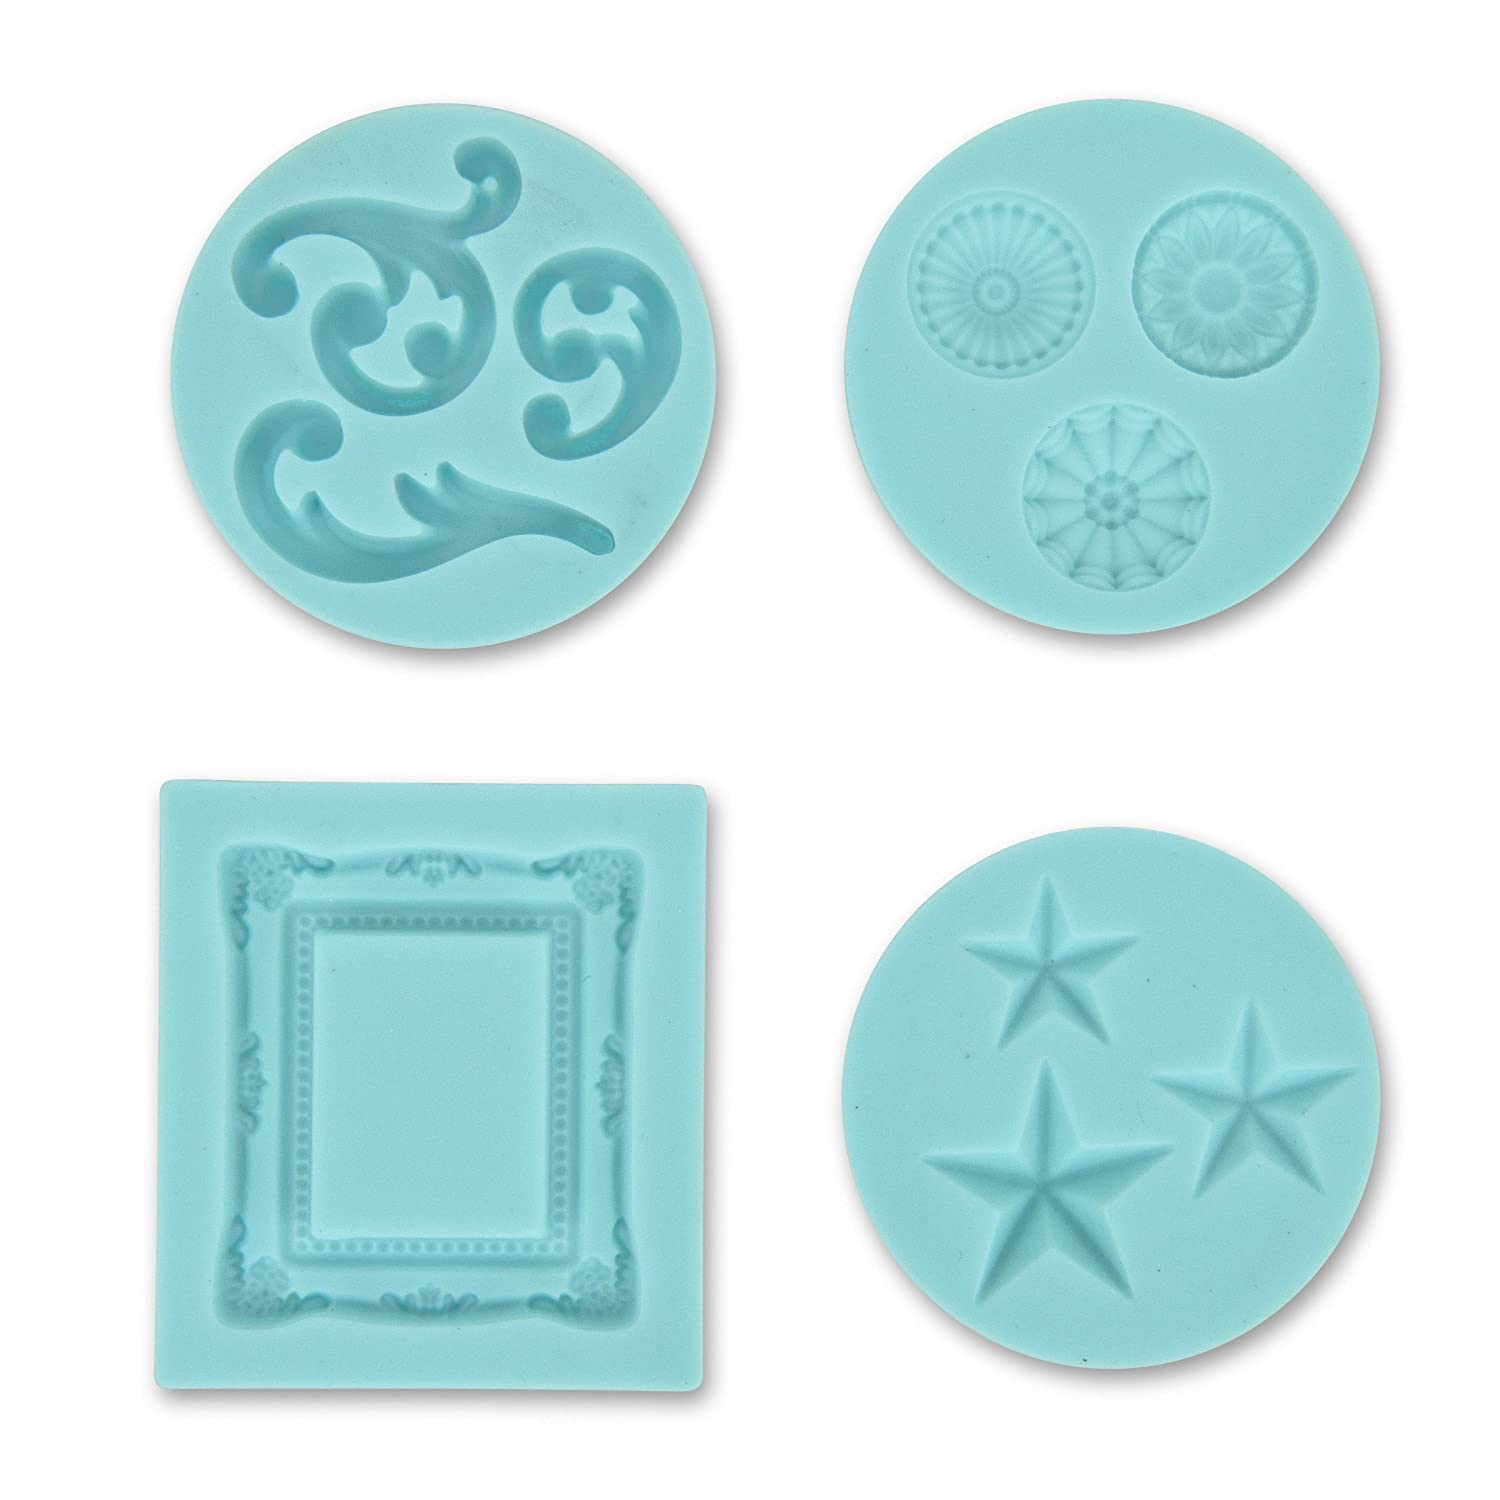 Martha Stewart Crafts Silicon Mold, Frame and Flourishes 43-00014